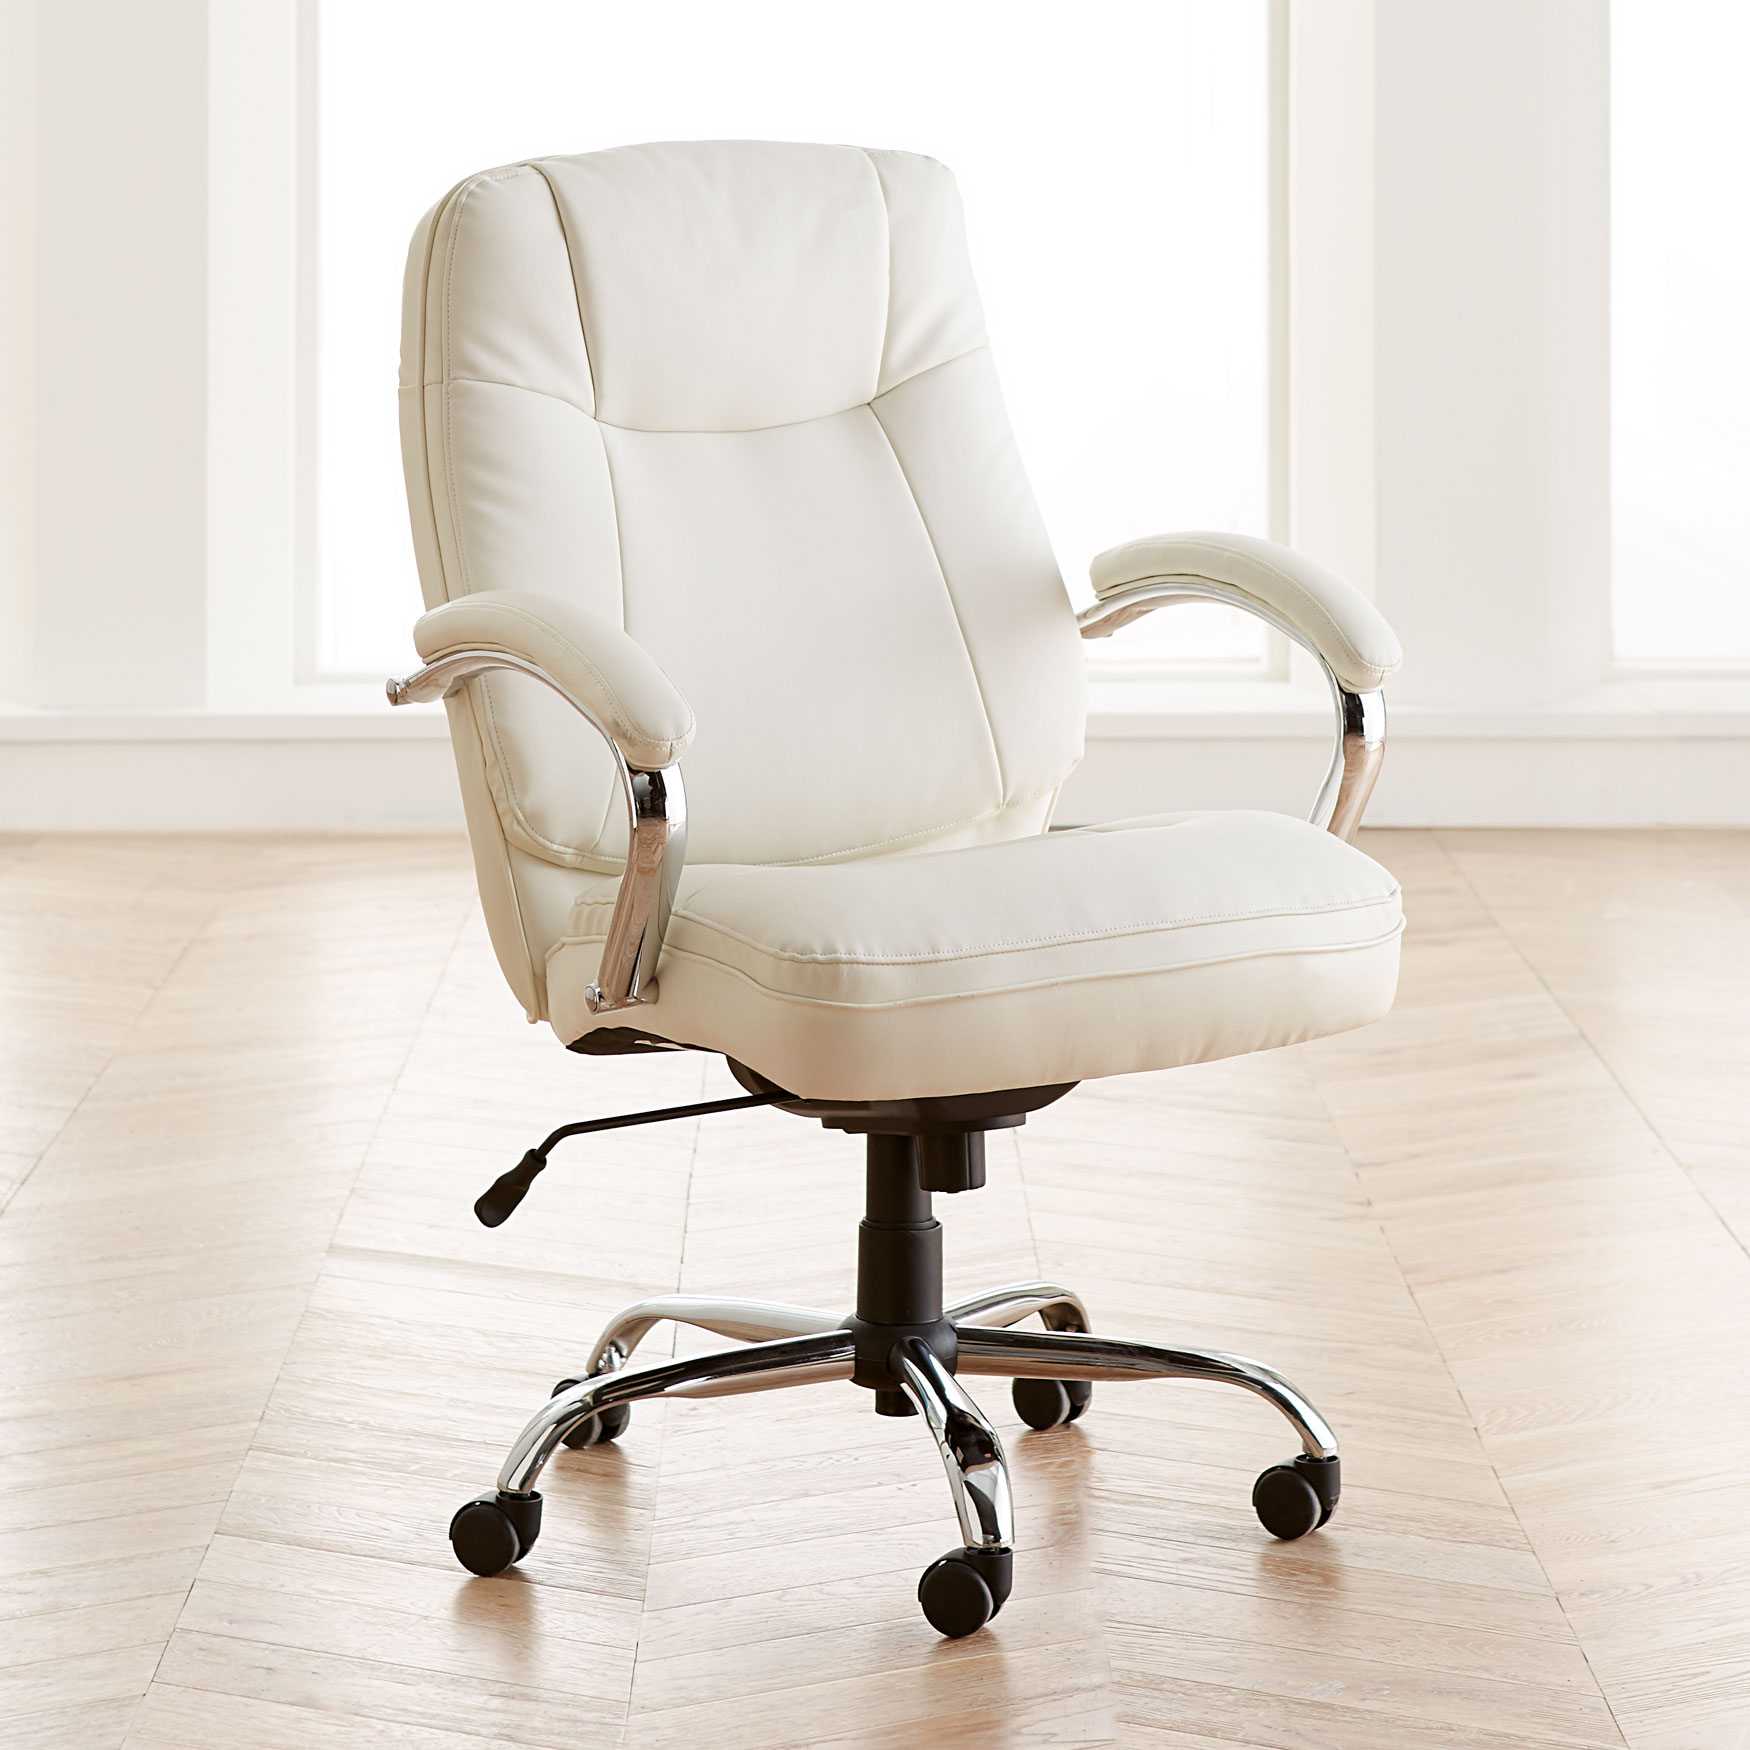 Extra Wide Women's Office Chair,